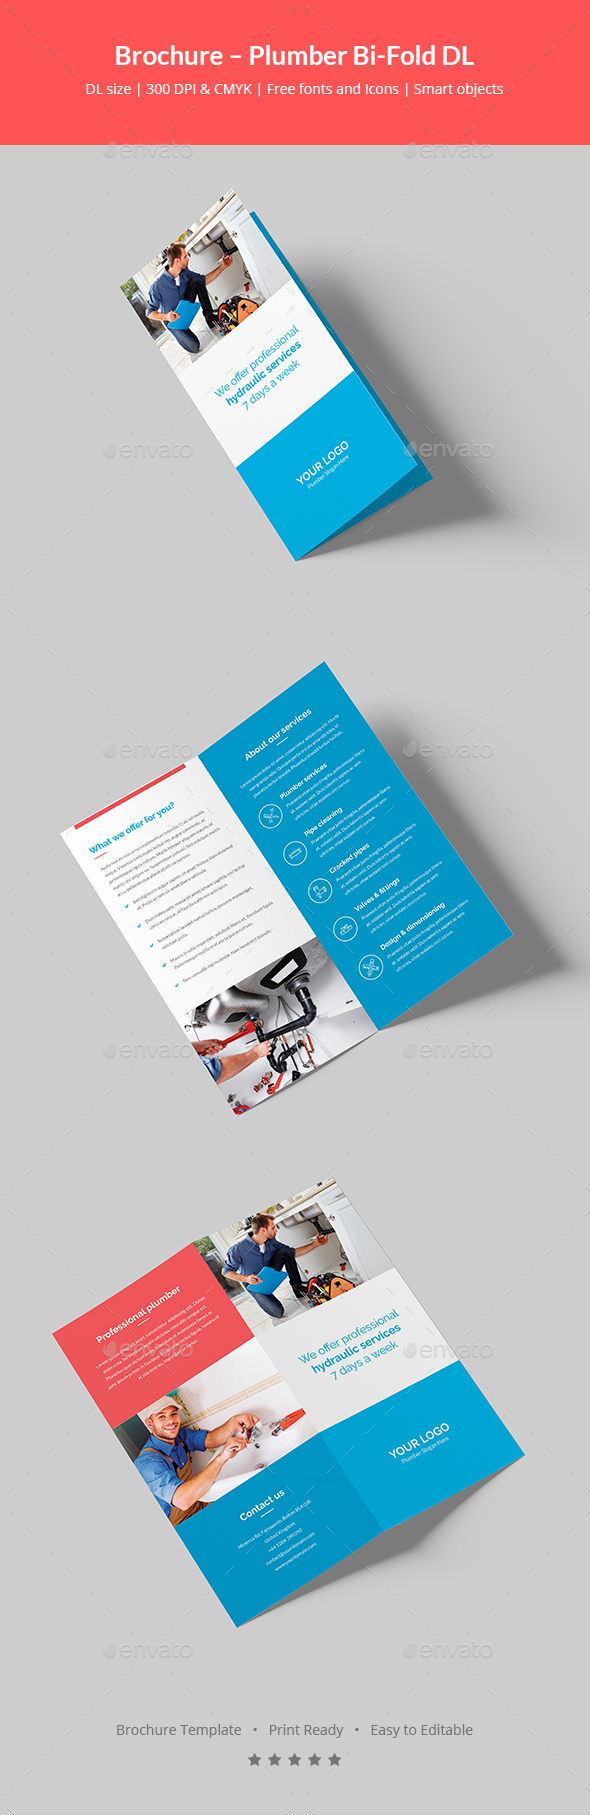 Graphics, Designs & Templates with Print Dimensions: 198x210